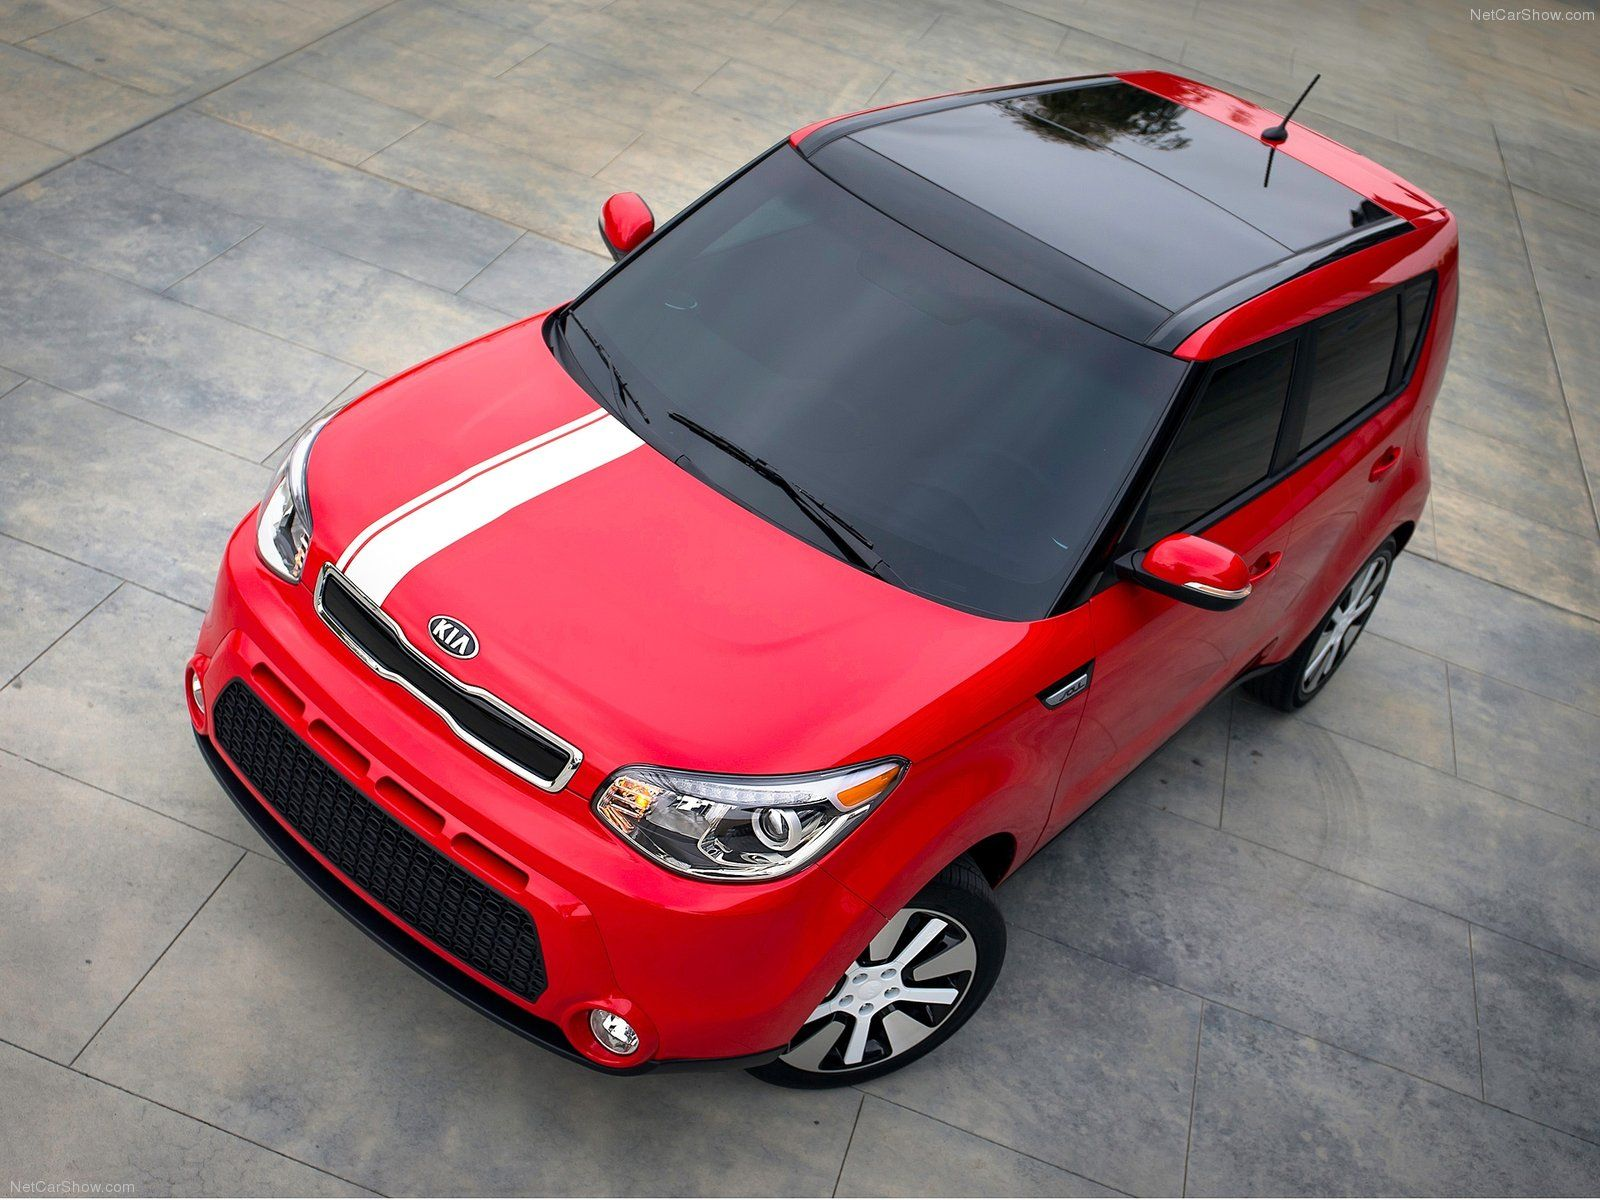 2014 Kia Soul Cars Motorcycles Pinterest Kia Soul Cars And